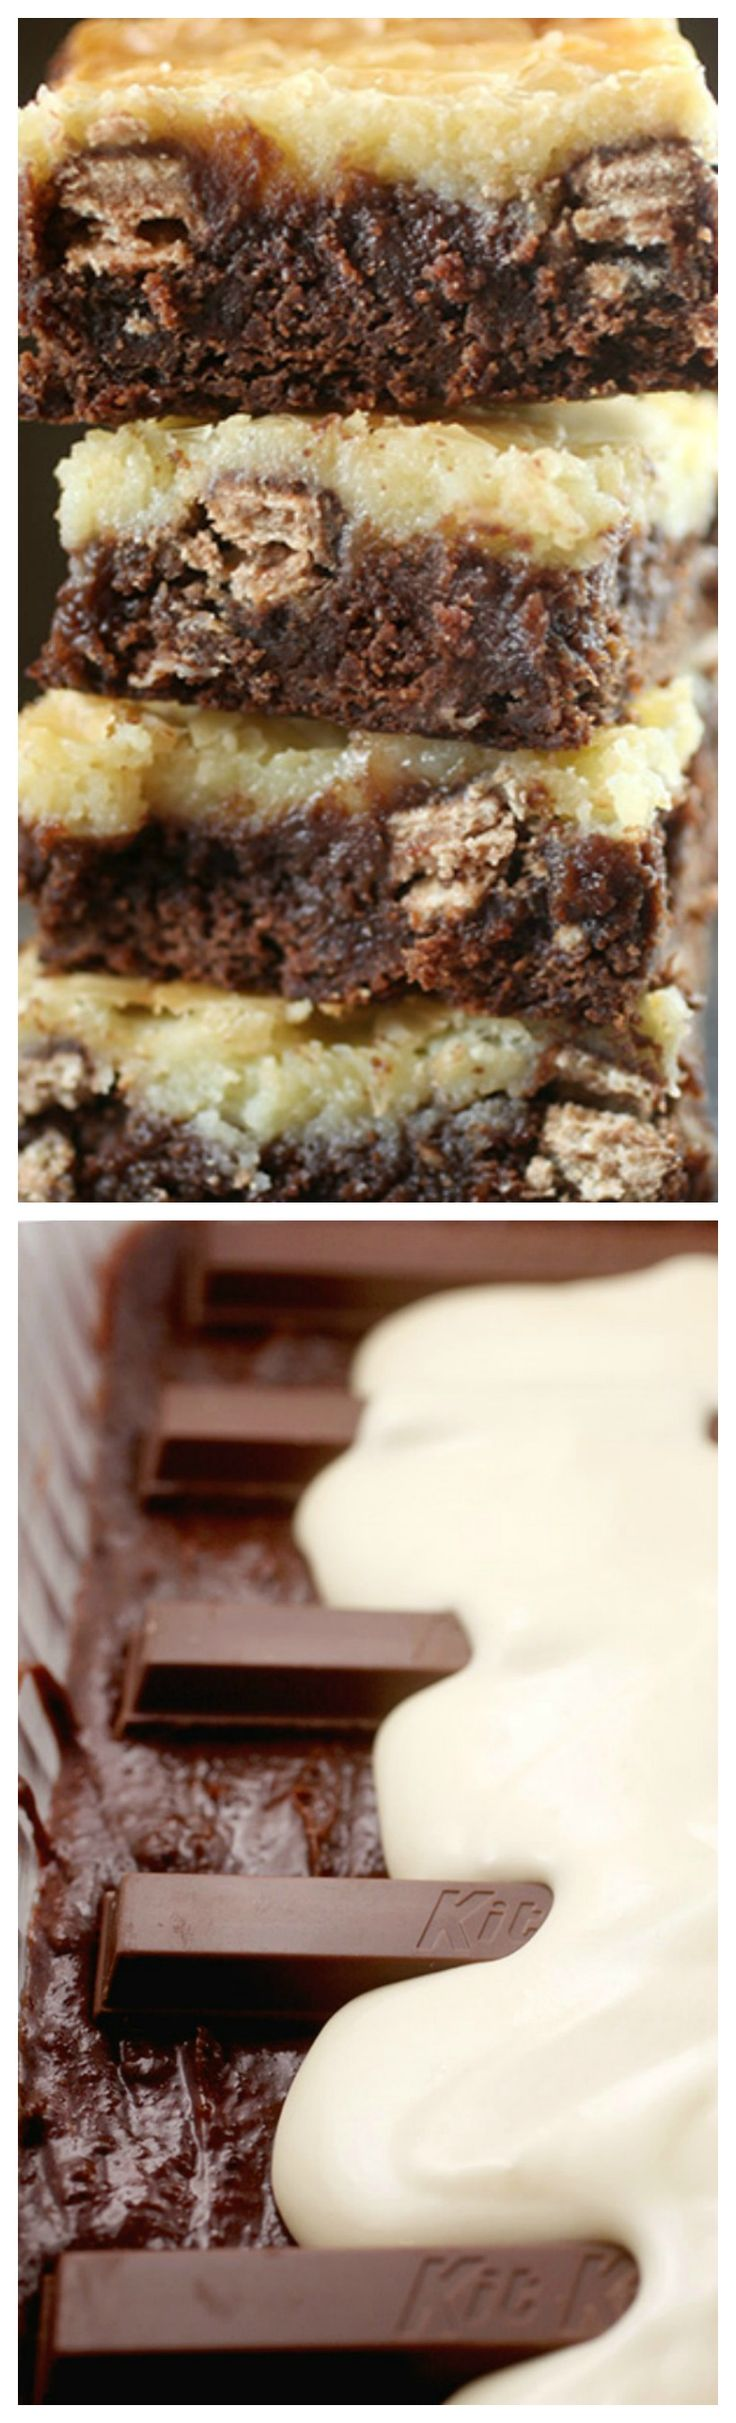 Kit Kat Cream Cheese Brownies ~ Chocolatey gooey goodness on the bottom, Kit Kat wafer bars in the middle and covered with a cheesecake topping to keep everything all cozy.